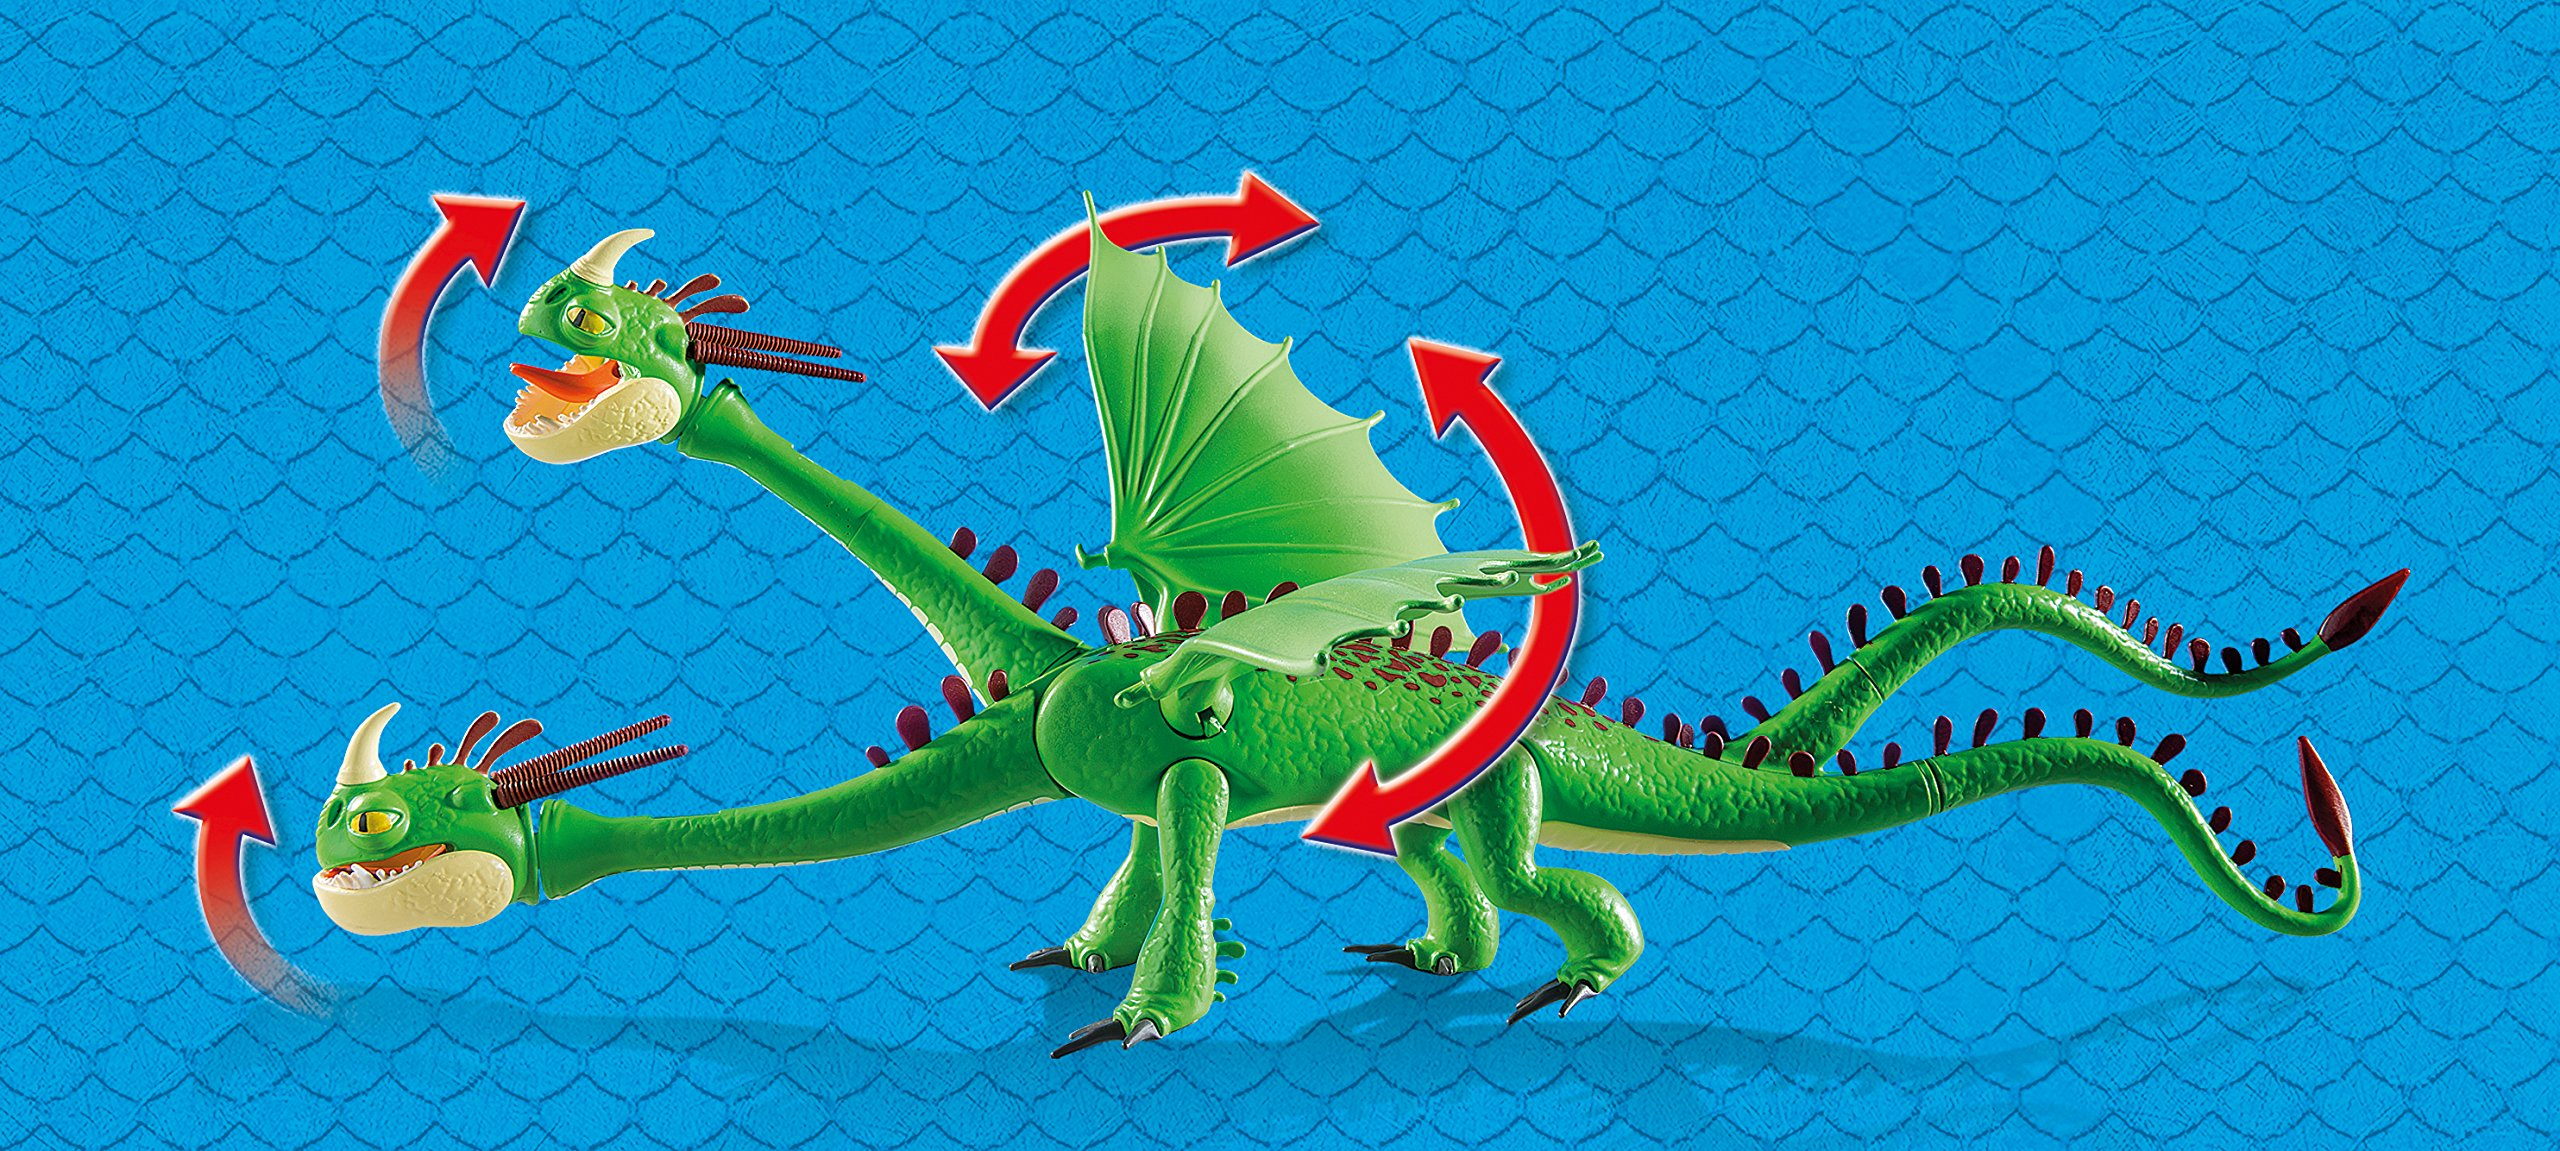 How to Train Your Dragon Twins with Barf and Belch by Playmobil (Image #3)